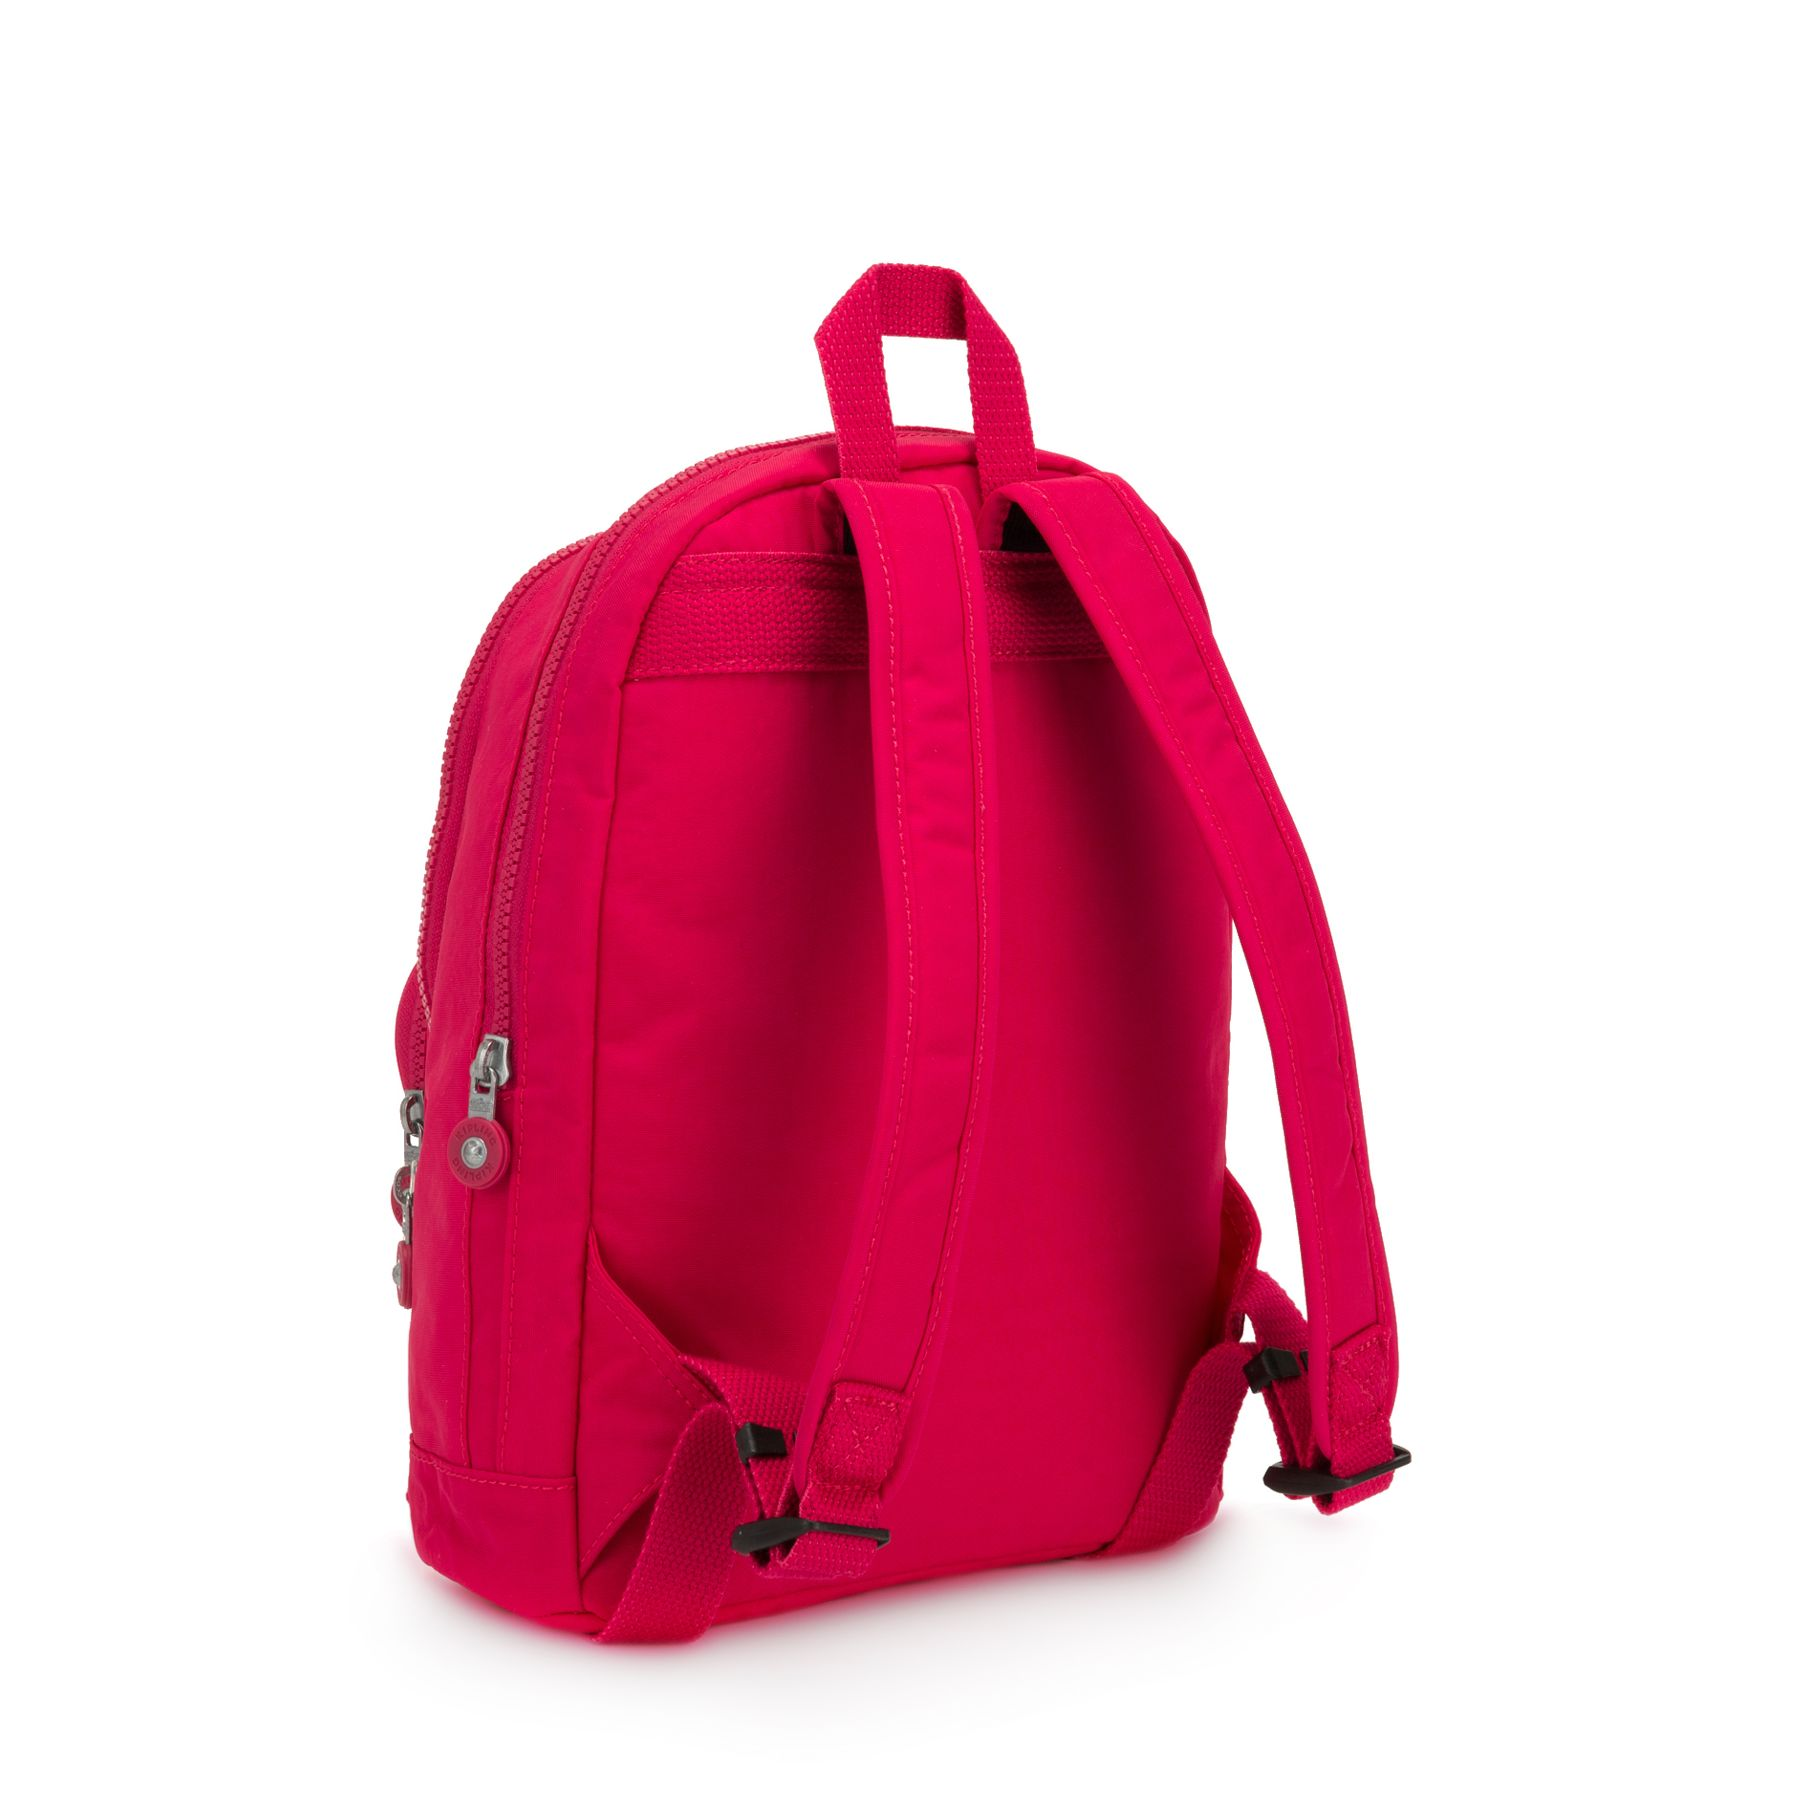 HEART BACKPACK by Kipling - Back view